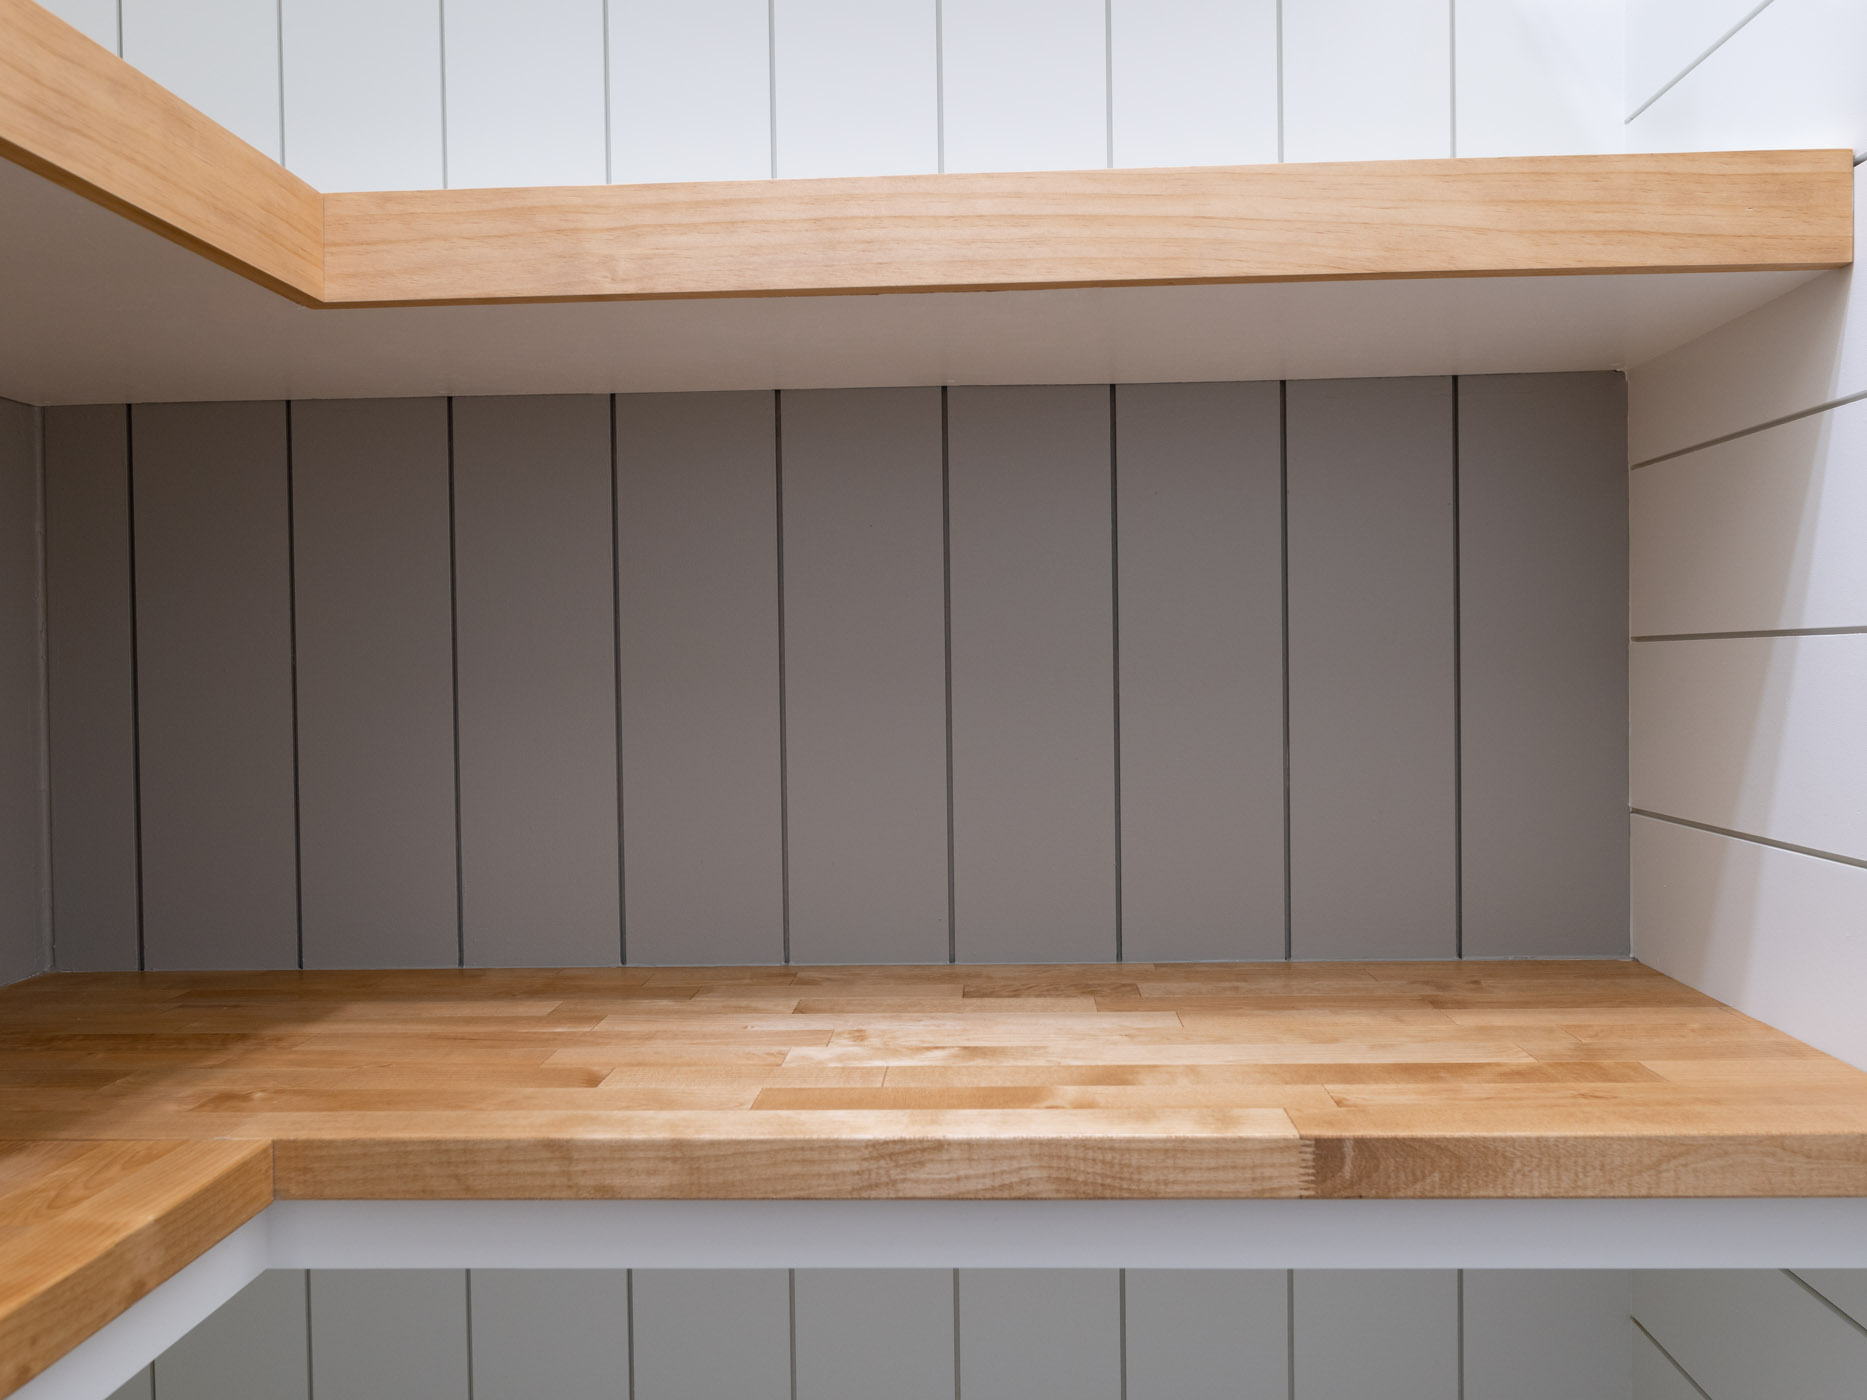 a picture showing white and gray shiplap walls, brown and white shelves and a wooden countertop